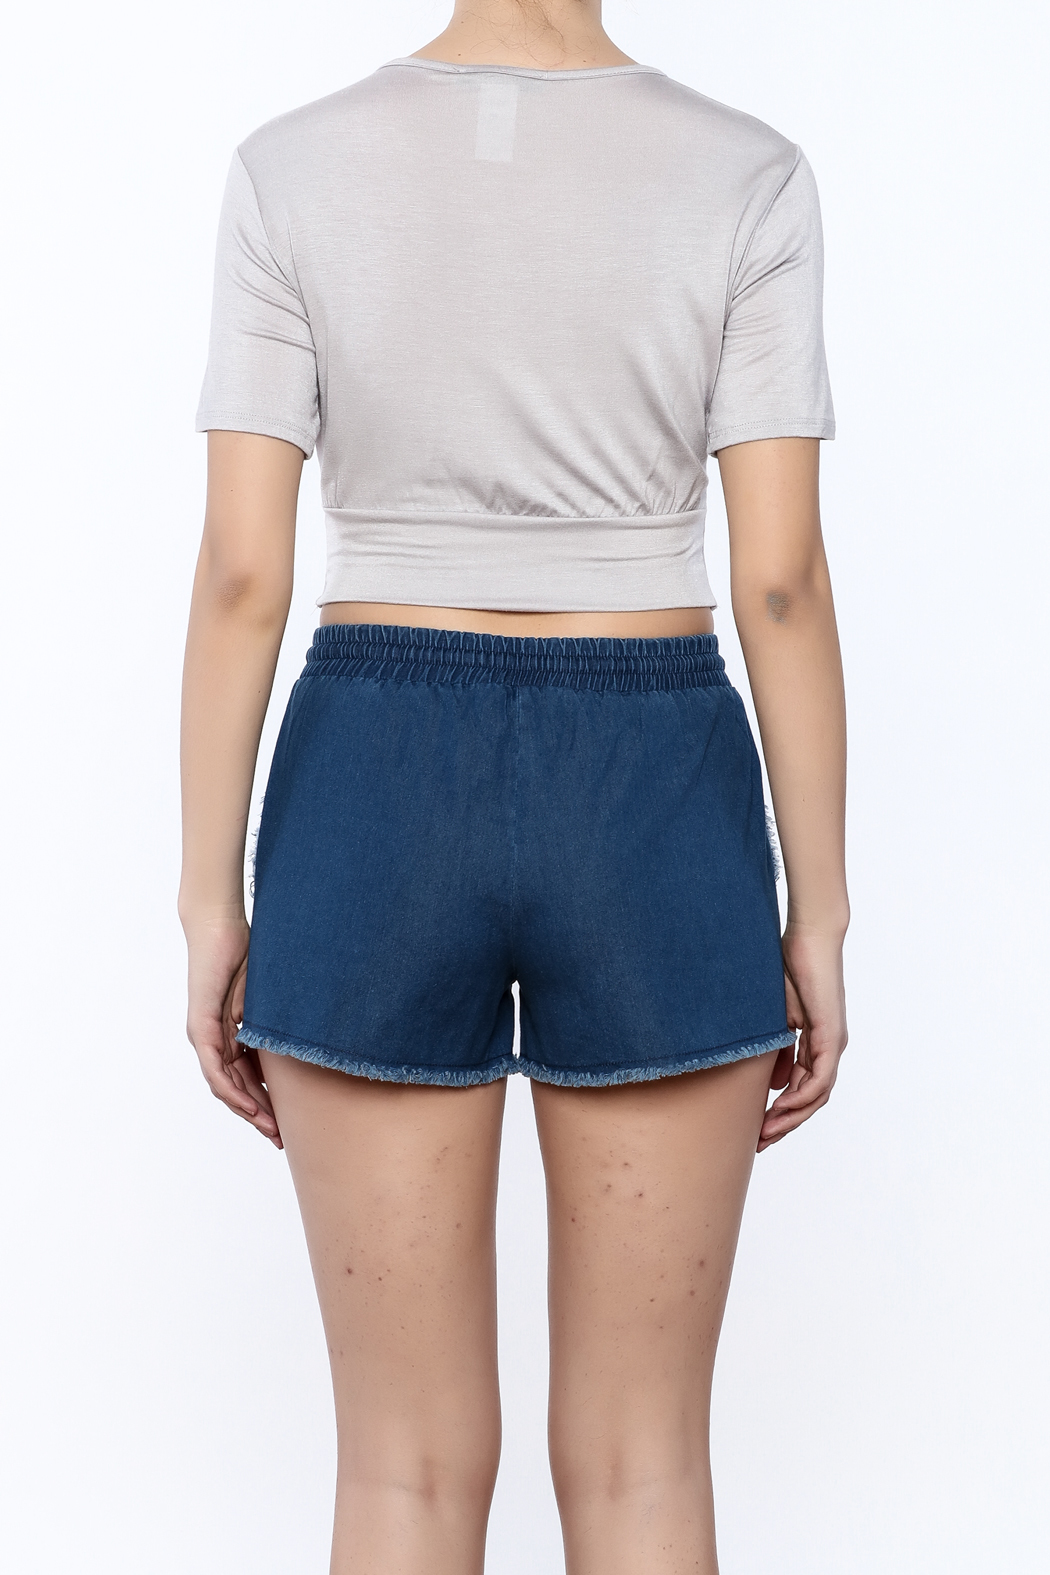 2 Hearts Twist-Knot Cropped Tee - Back Cropped Image